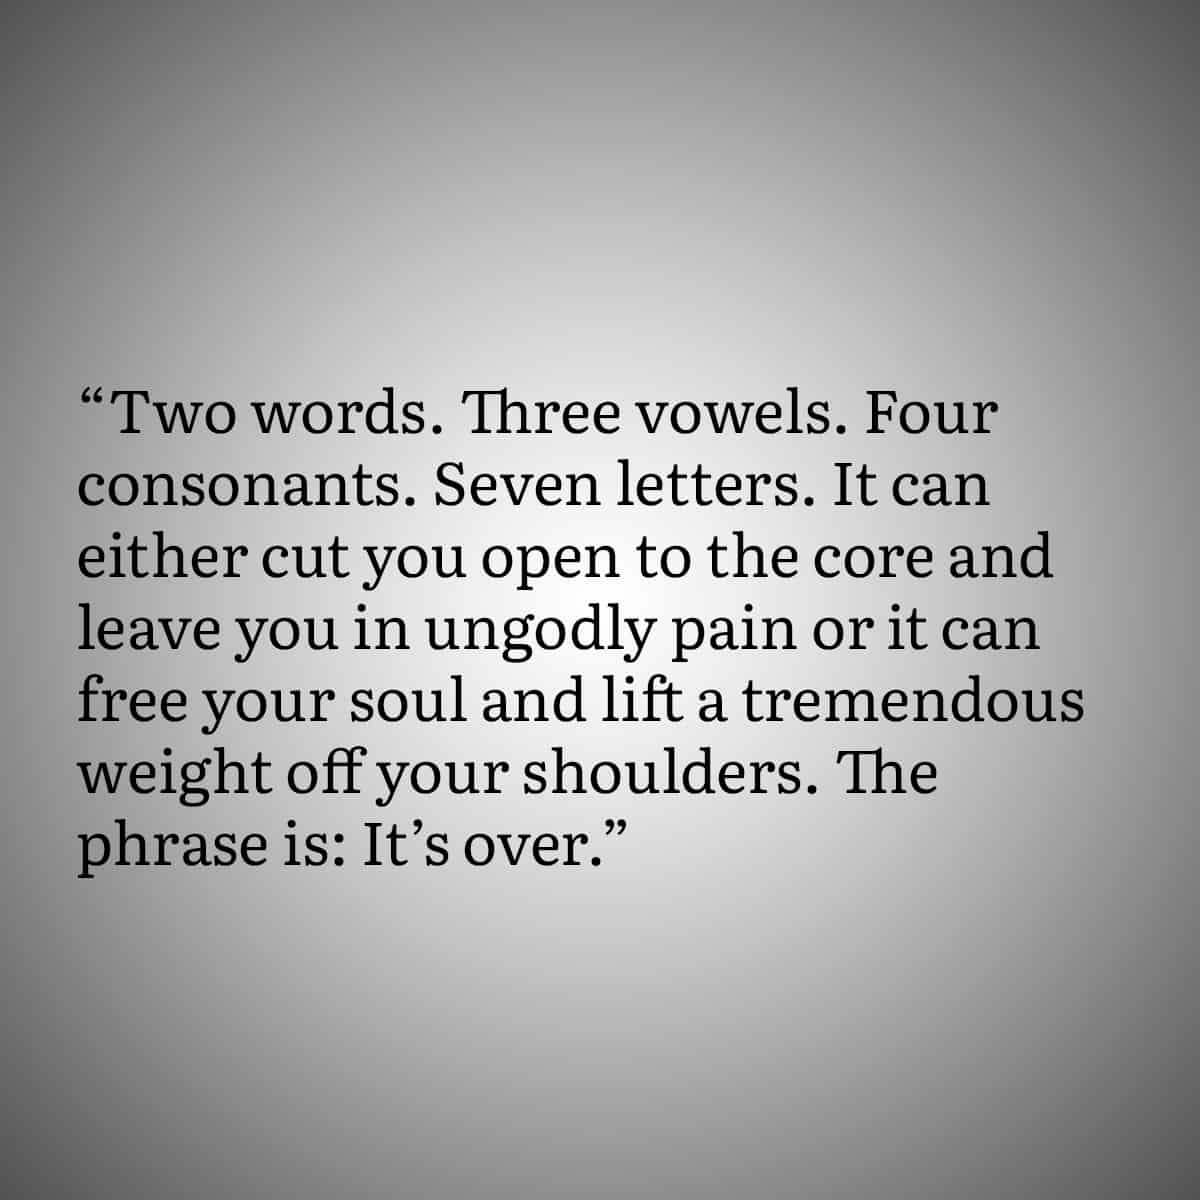 """Broken Heart Quote 3: """"Two words, Three vowels. Four consonants. Seven Letter. It can either cut you open to the core and leave you in ungodly pain or it can free your soul and life a tremendous weight off your shoulders. The phrase is: It's over."""""""